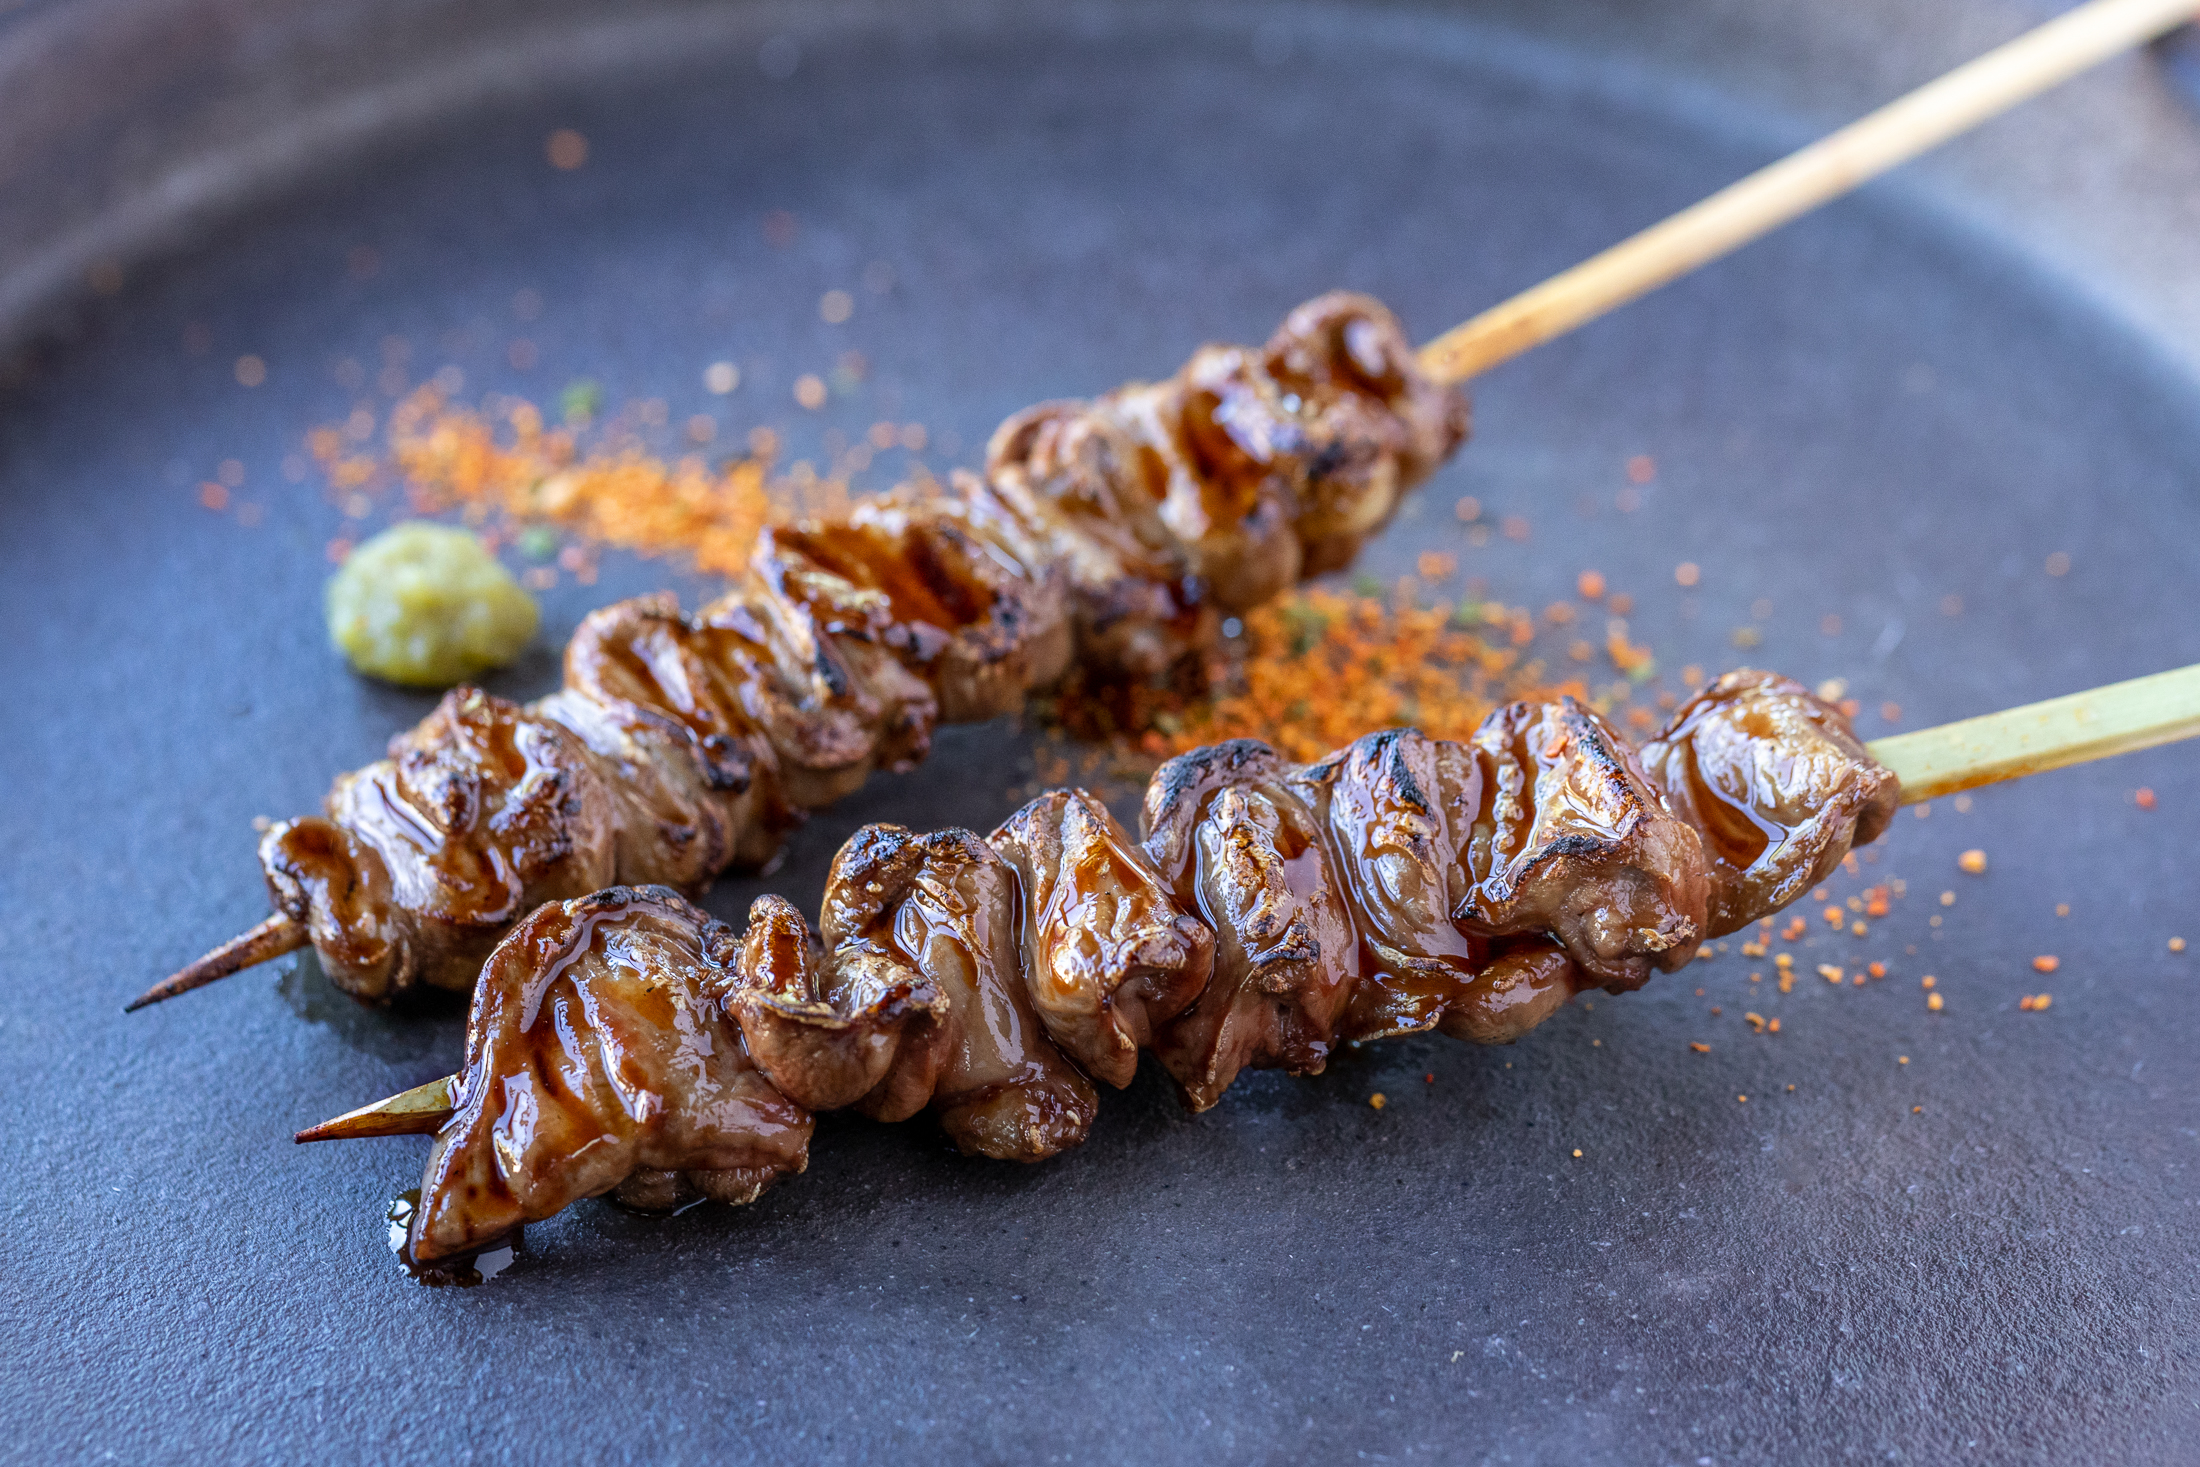 09-2019_OTOTO_Food_Final Images_Web-Res_10